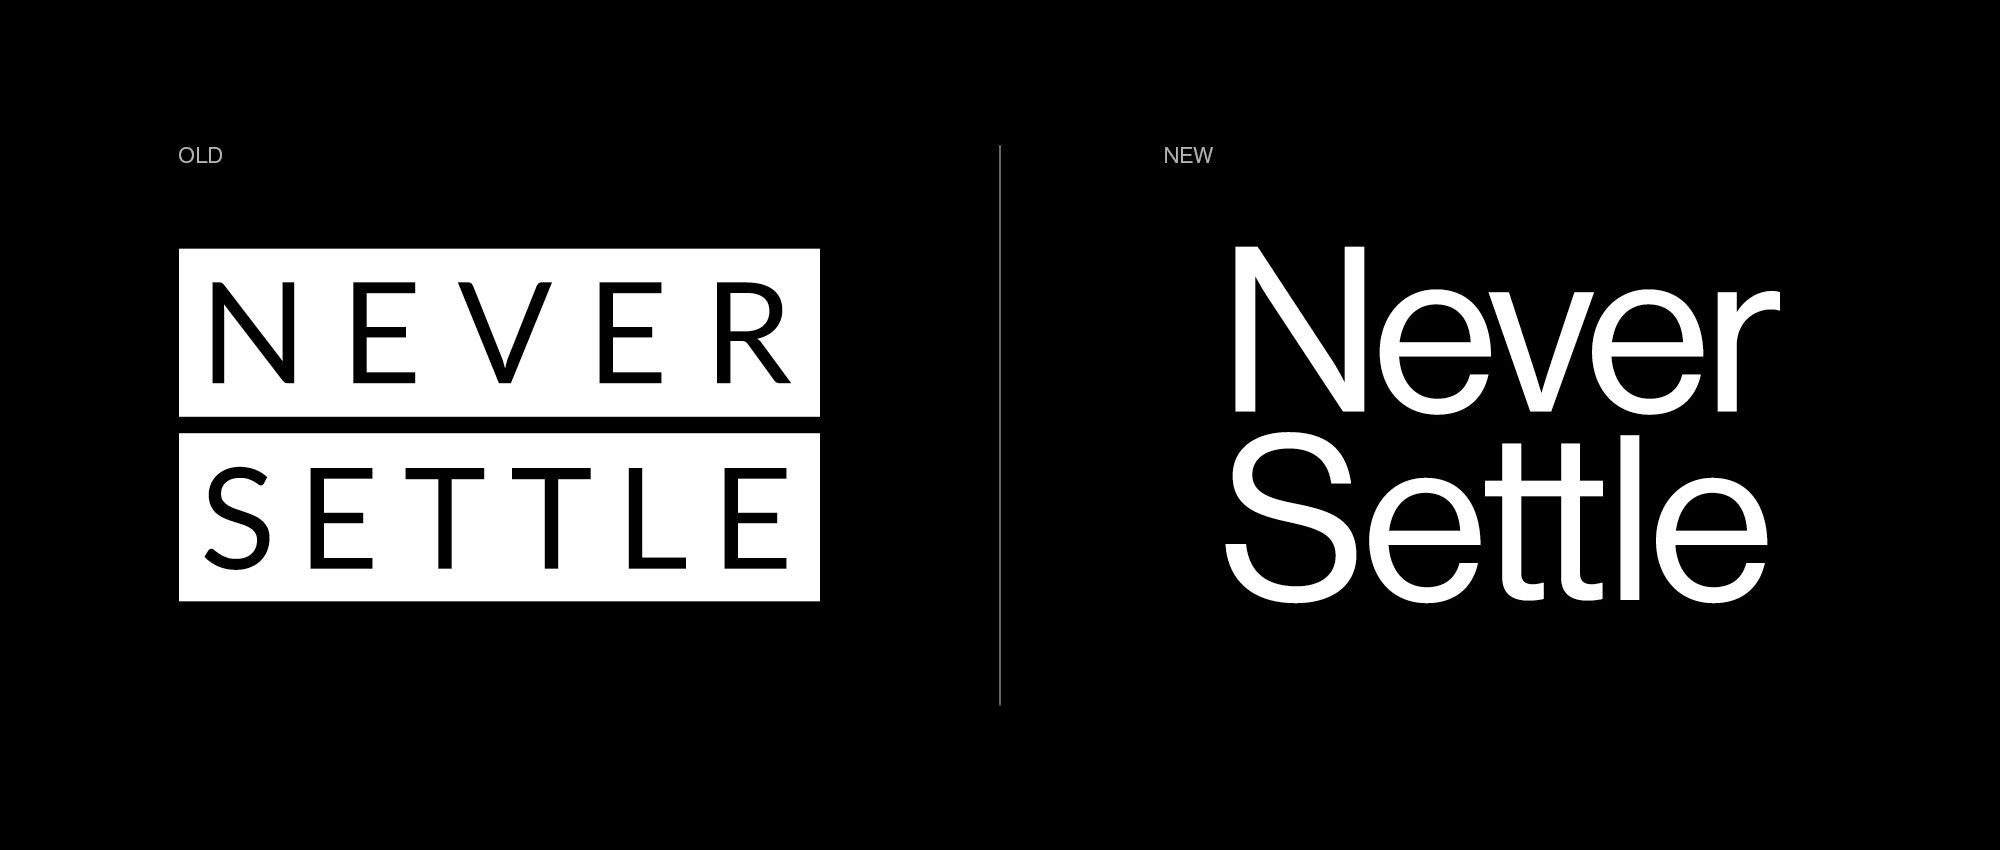 Old and New OnePlus tagline. Image: OnePlus